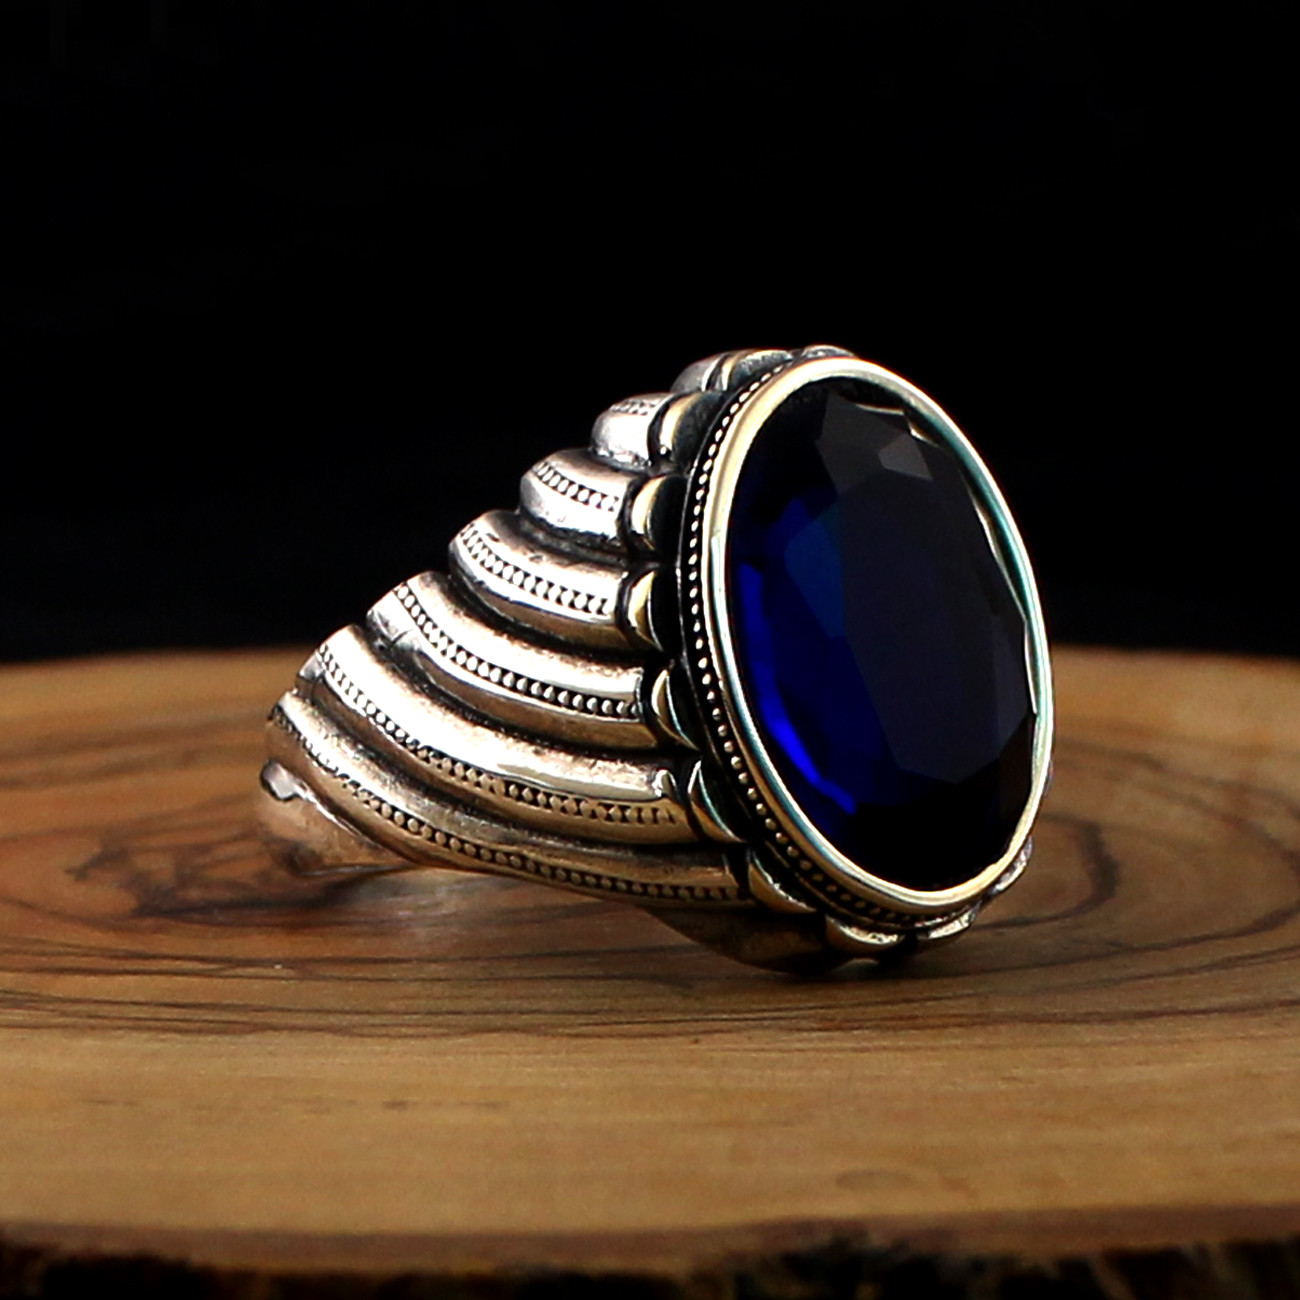 925 Sterling Silver Ring for Men with Blue Zircon Stone (Made in Turkey)